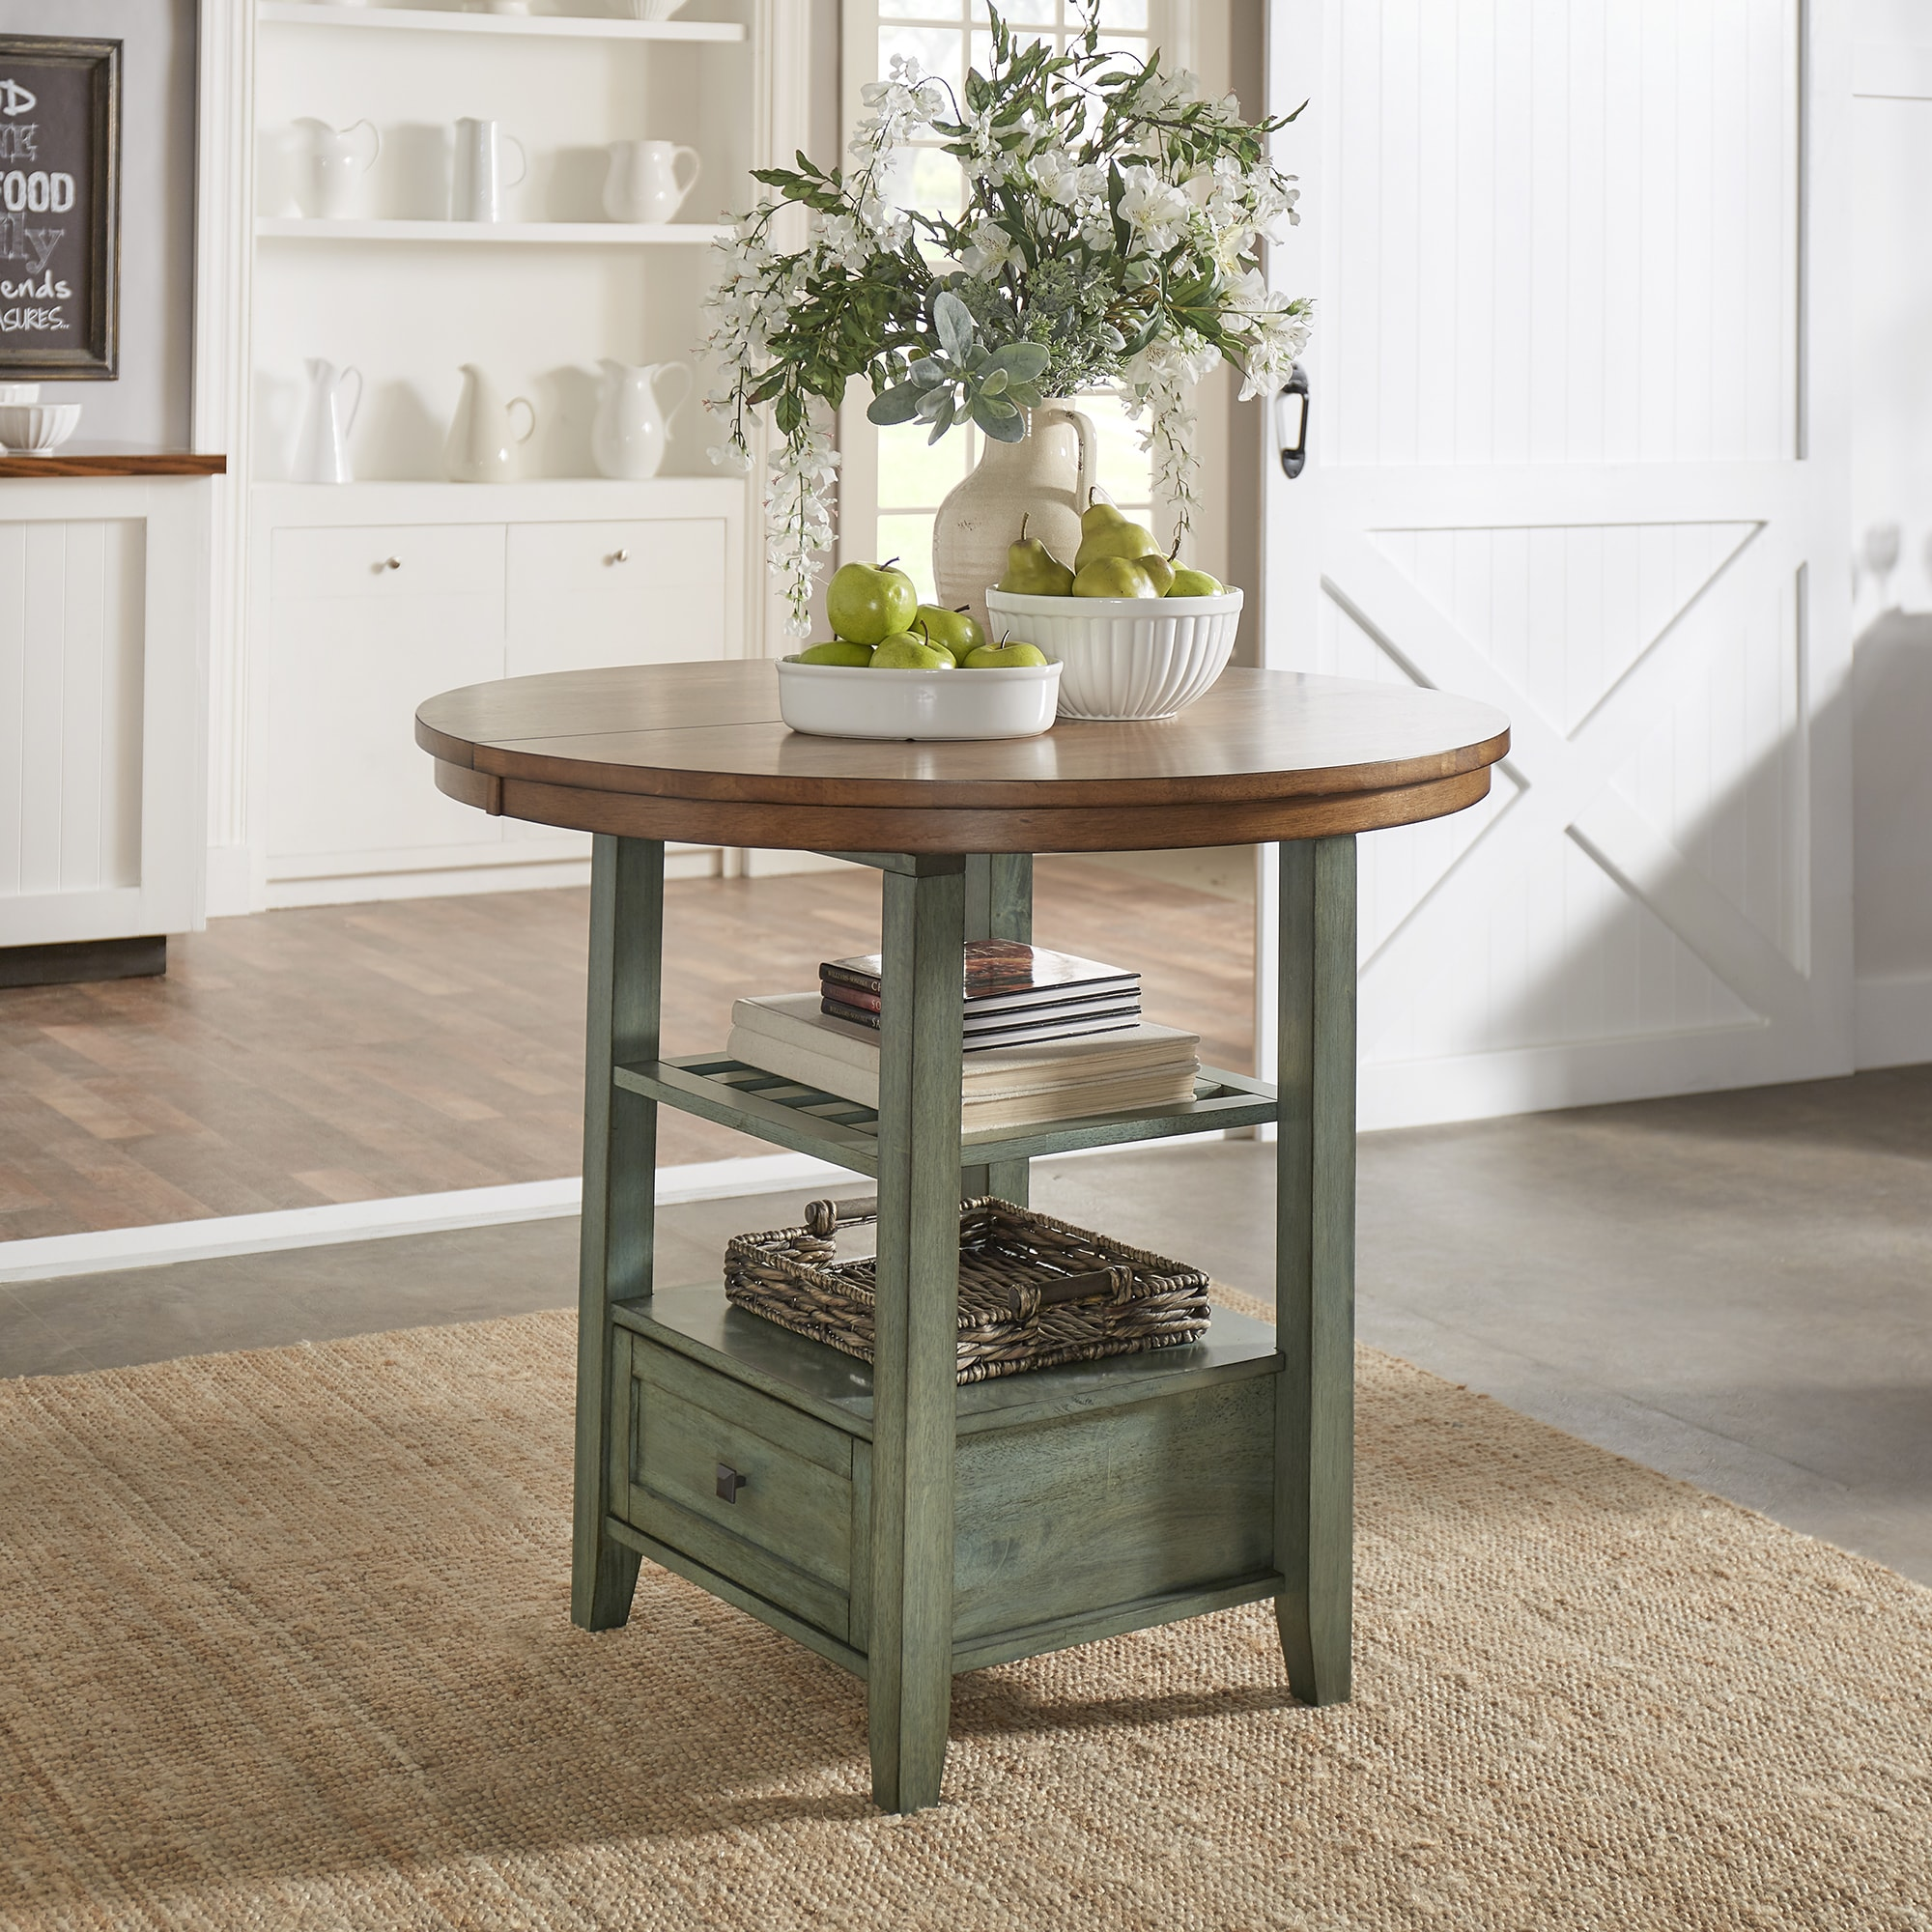 Eleanor Solid Wood Oval Extendable Counter Height Pedestal Base Dining Table  from iNSPIRE Q Classic - Free Shipping Today - Overstock.com - 24171277